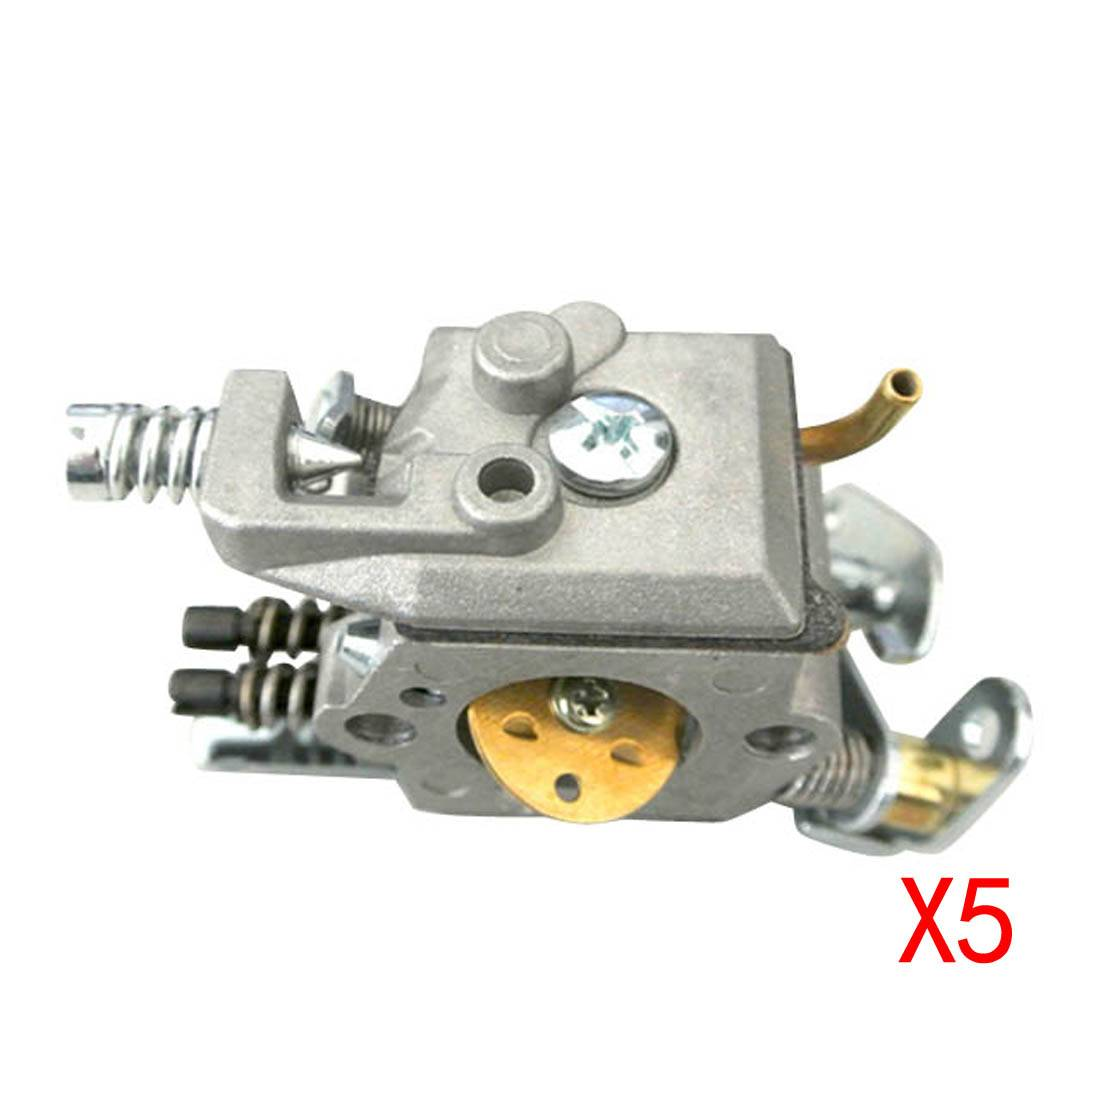 New Carburetor Carby For Husqvarna 136 137 141 142 Chainsaw Engine Motor Part brand new carburetor carby for datsun nissan 610 620 710 720 16010 13w00